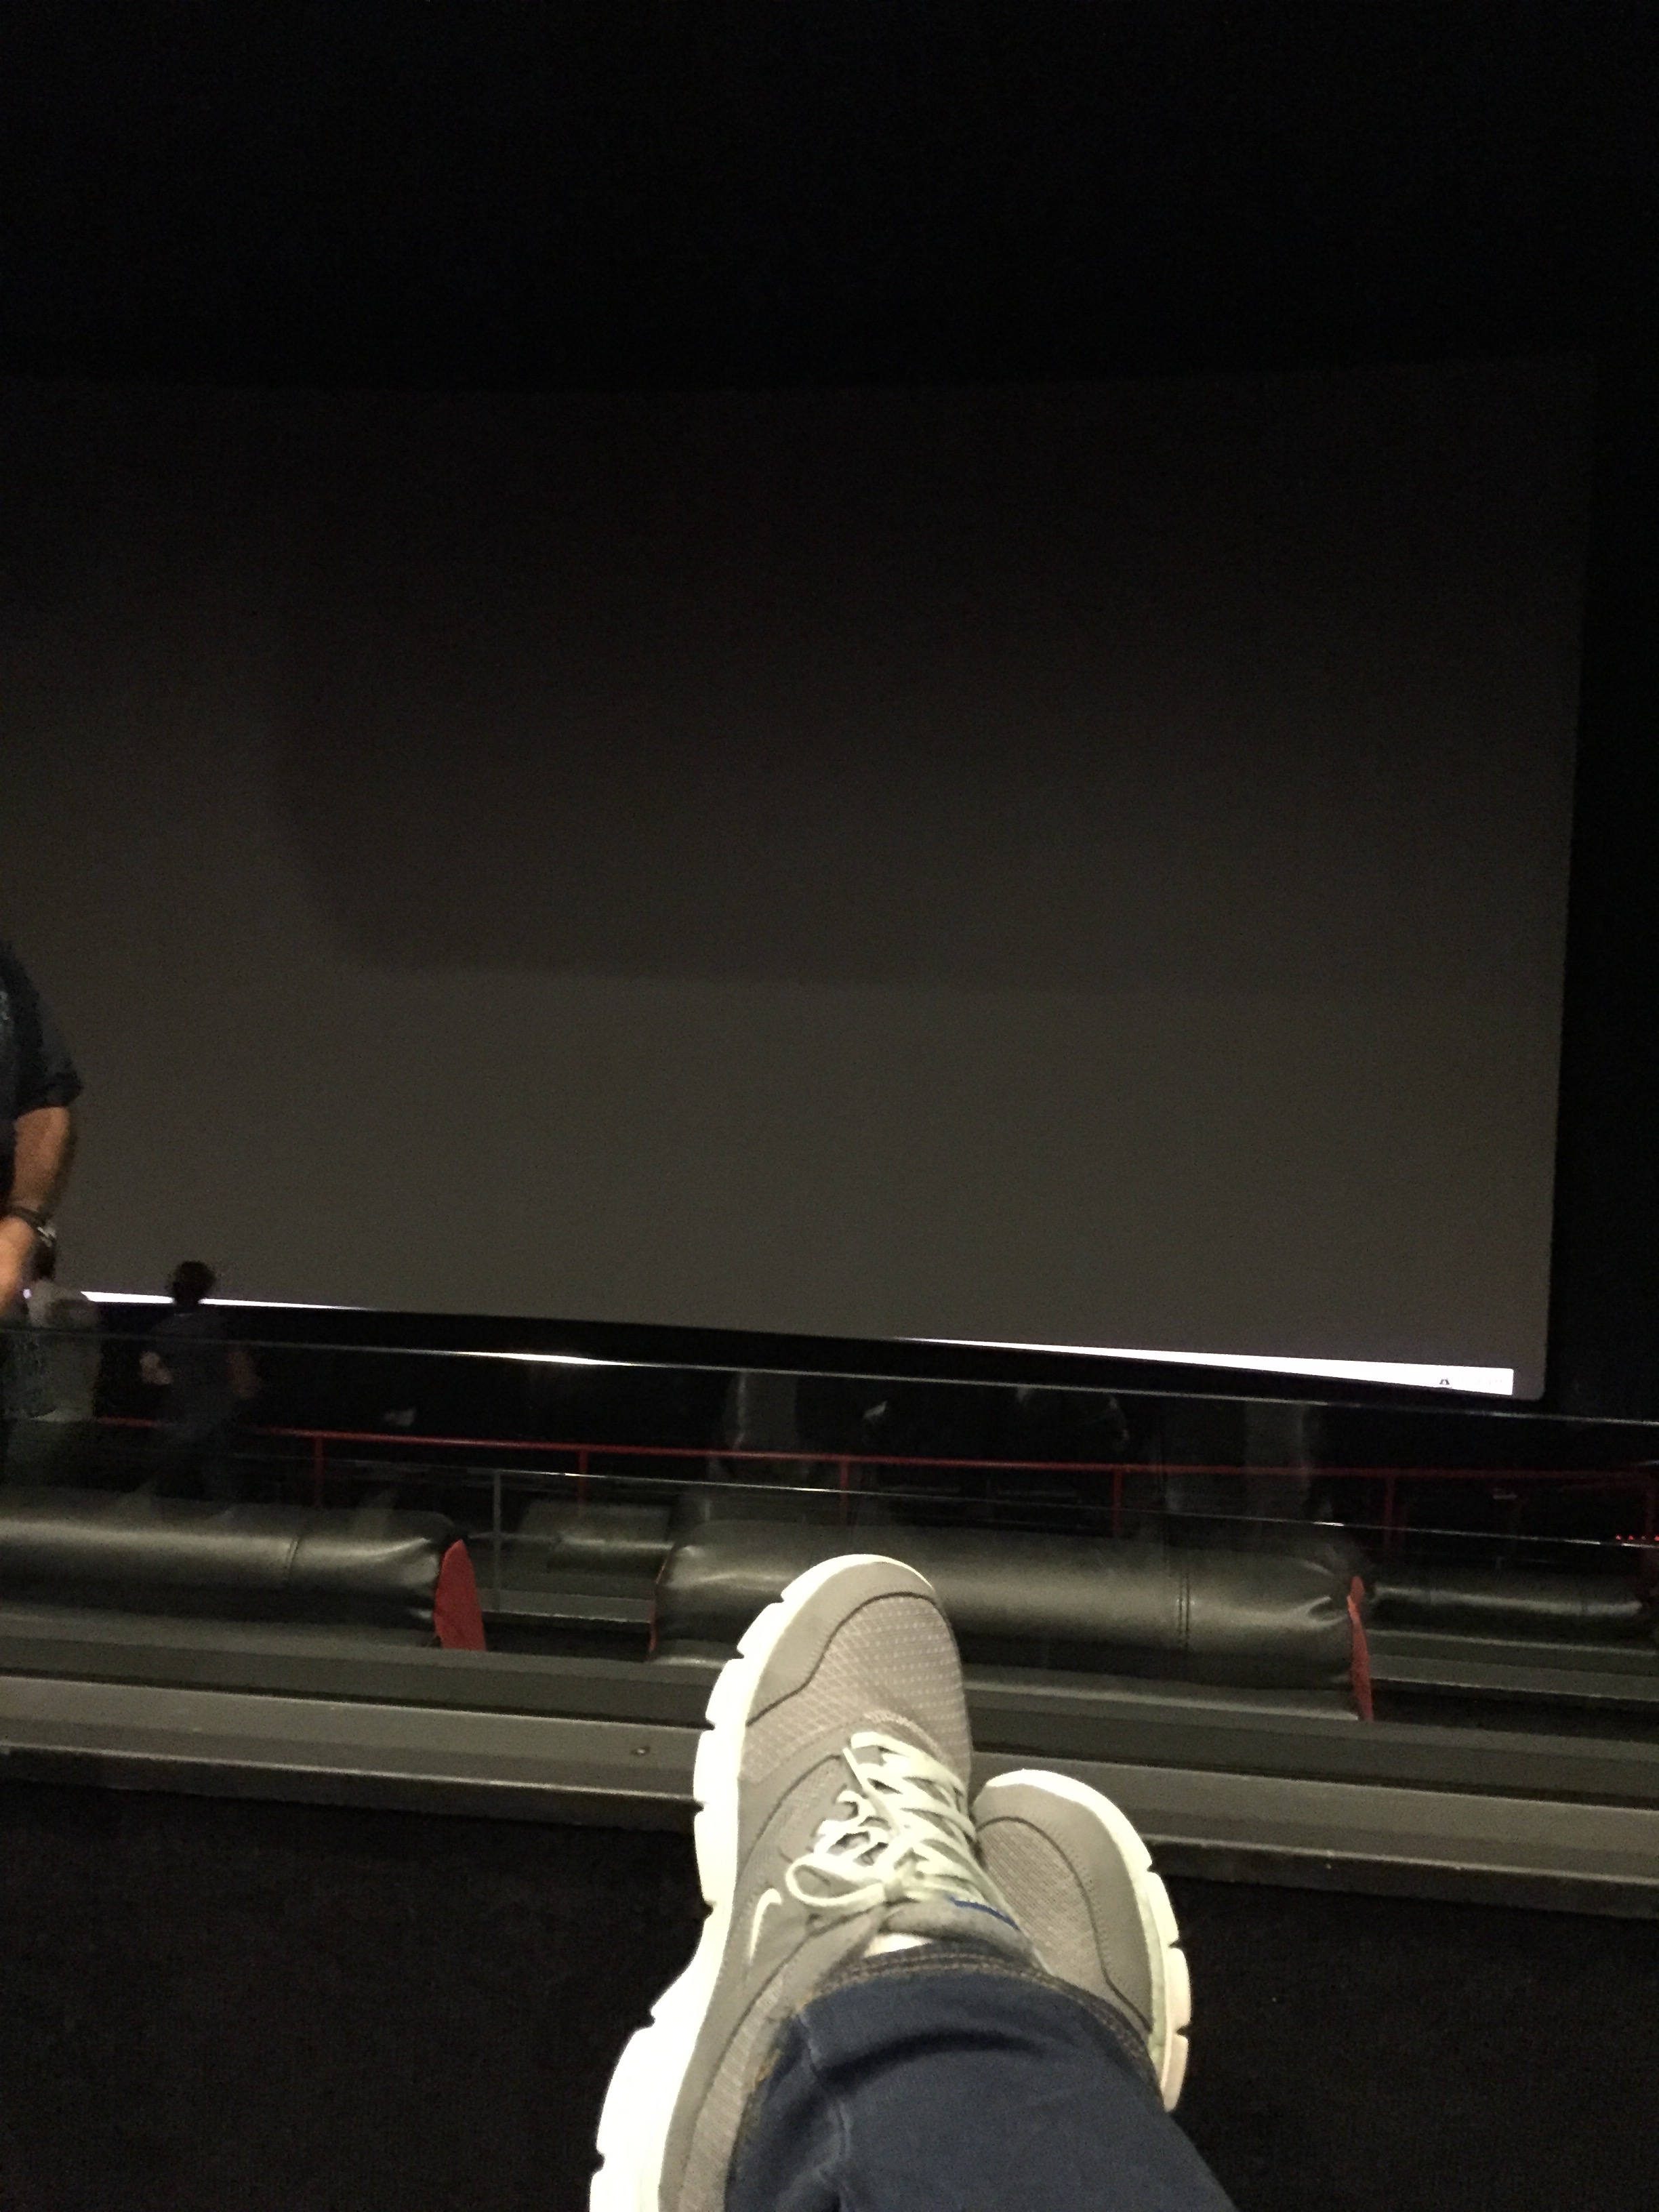 this is me in the comfort of my personal recliner, loving my amazing movie-going experience.